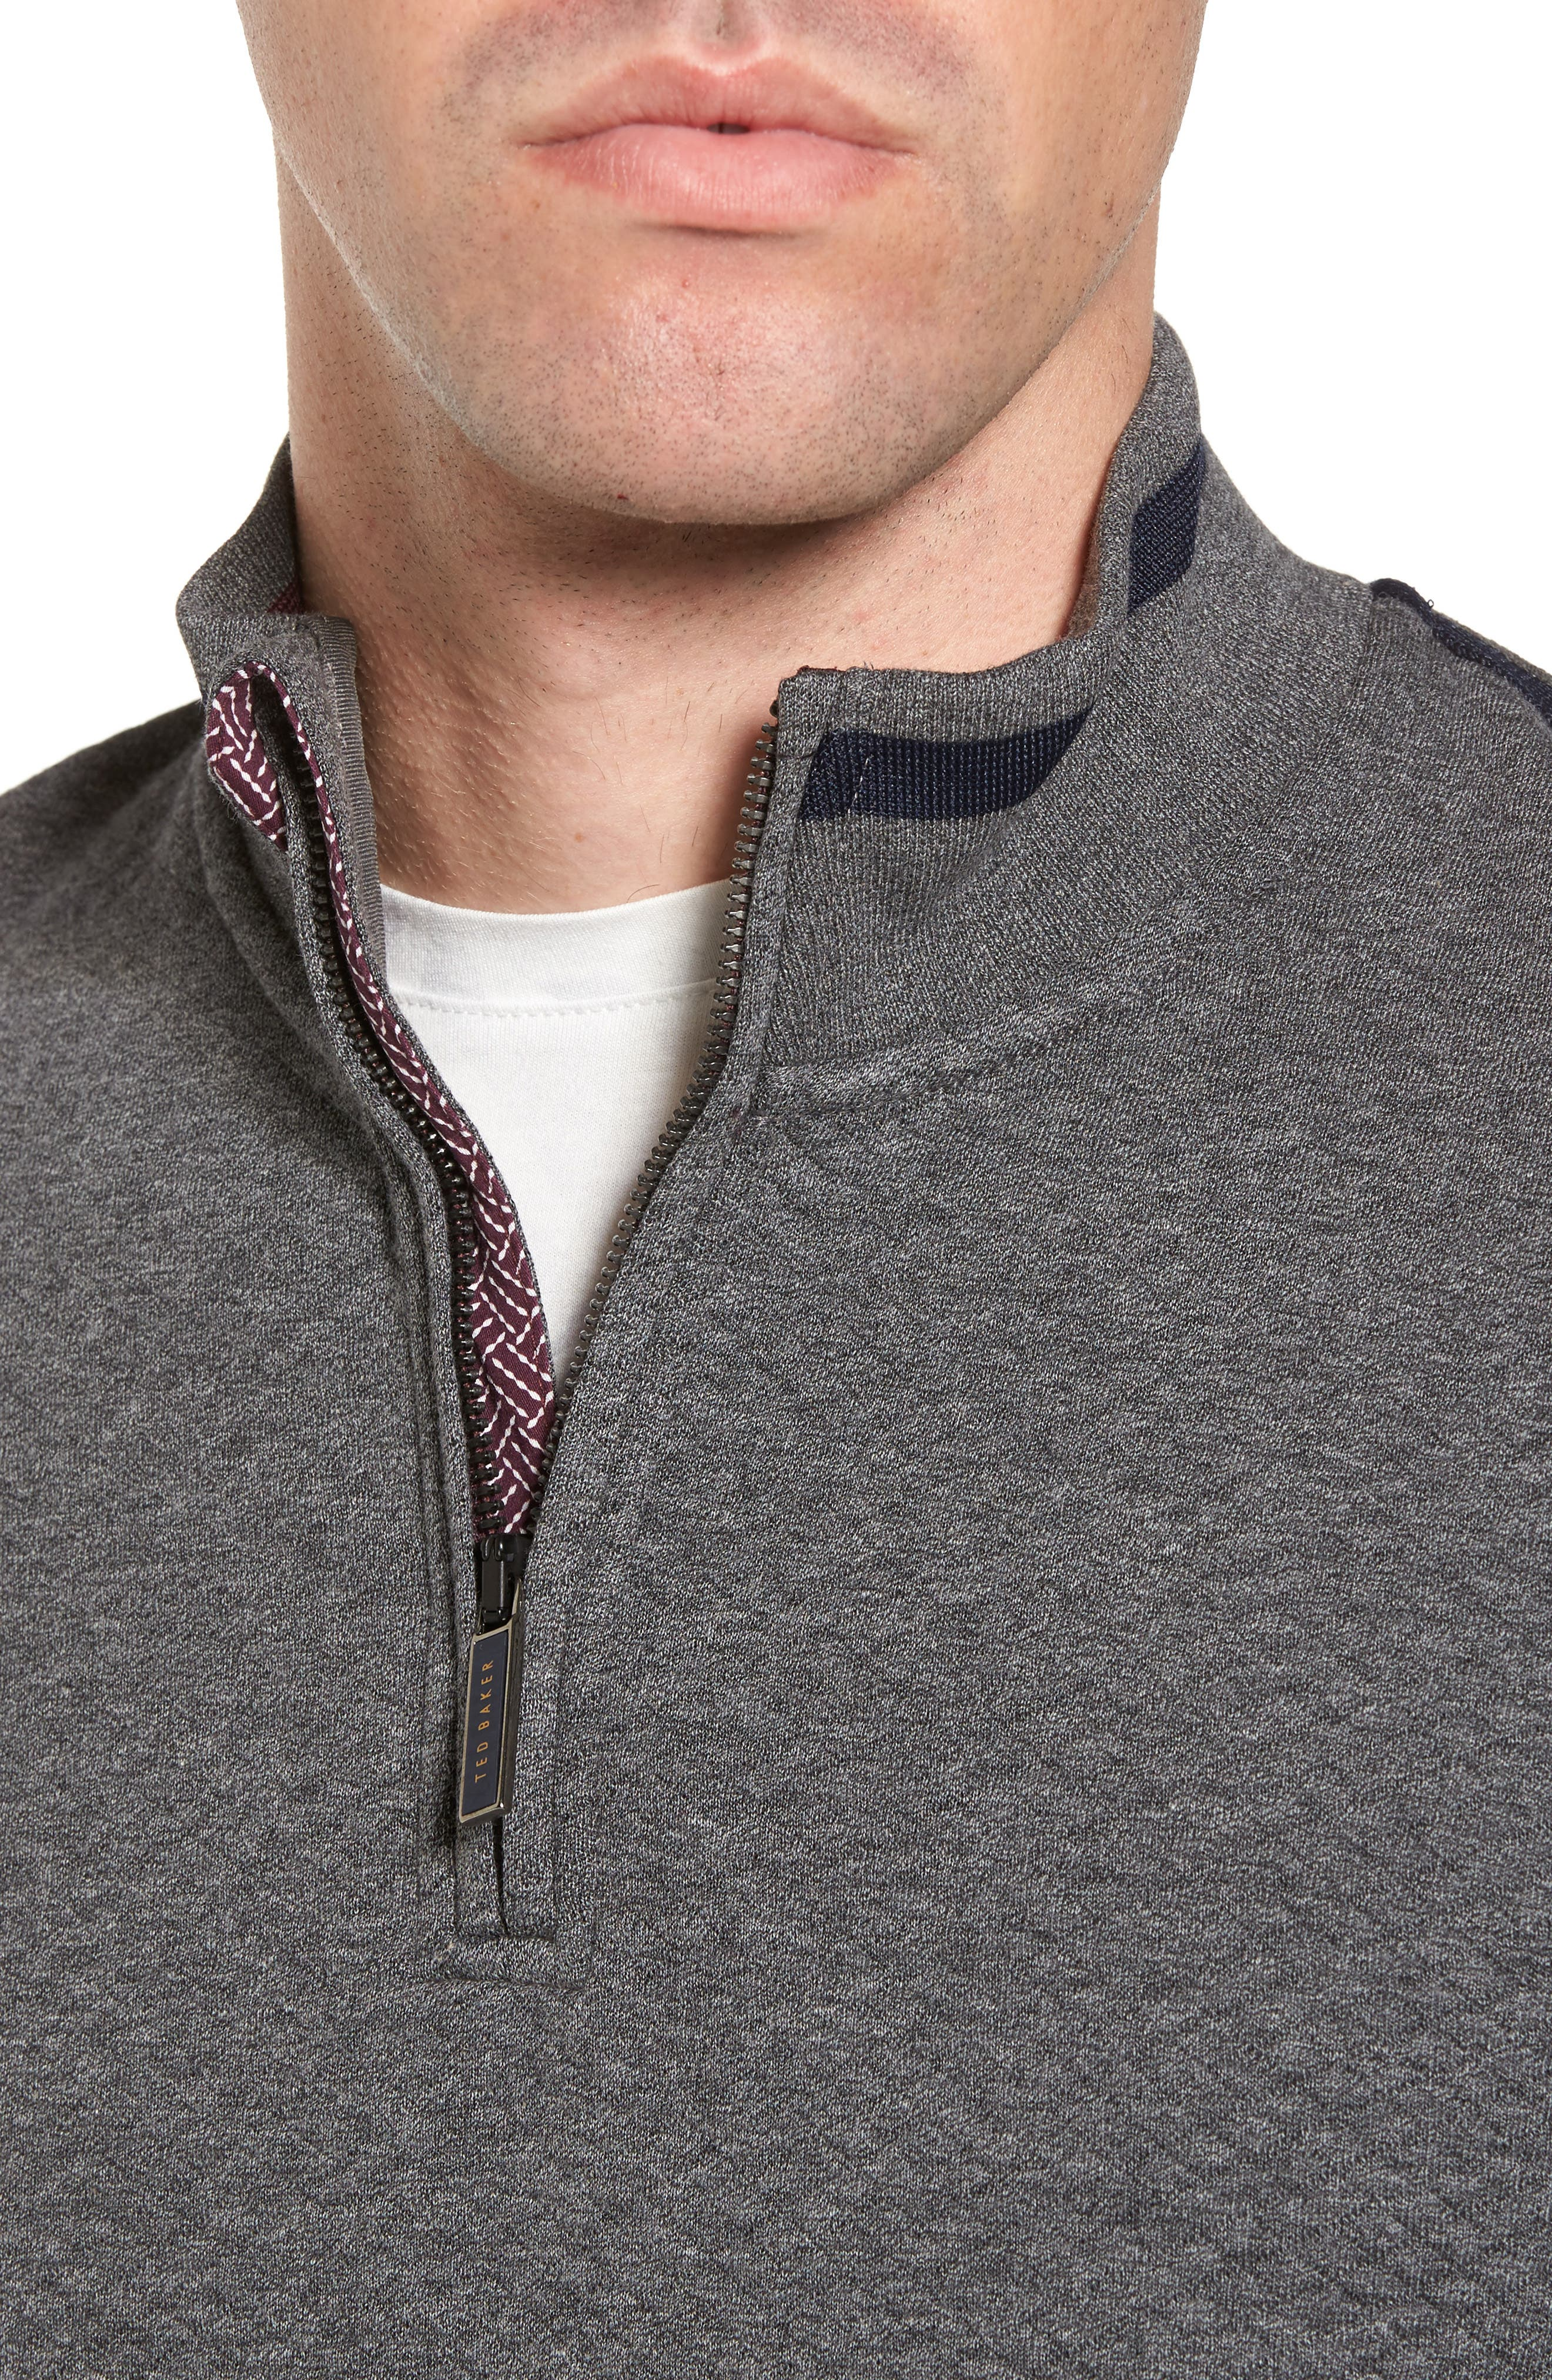 Sidney Quilted Quarter Zip Sweatshirt,                             Alternate thumbnail 4, color,                             010